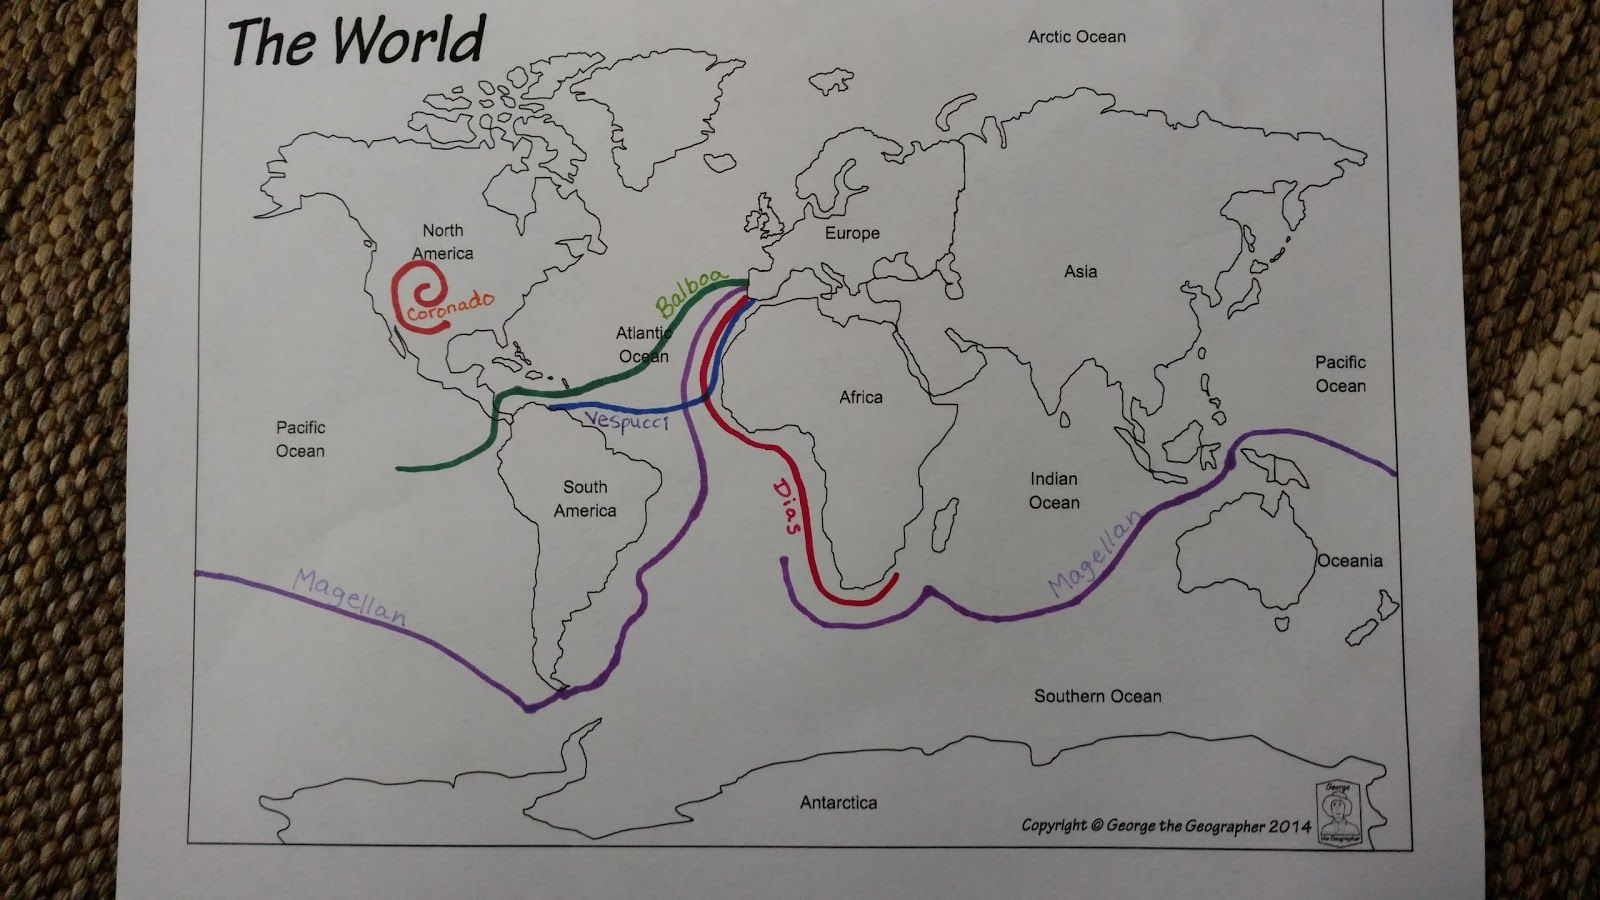 C2 Wk8 Print Out World Map And Mark The Exploration Routes